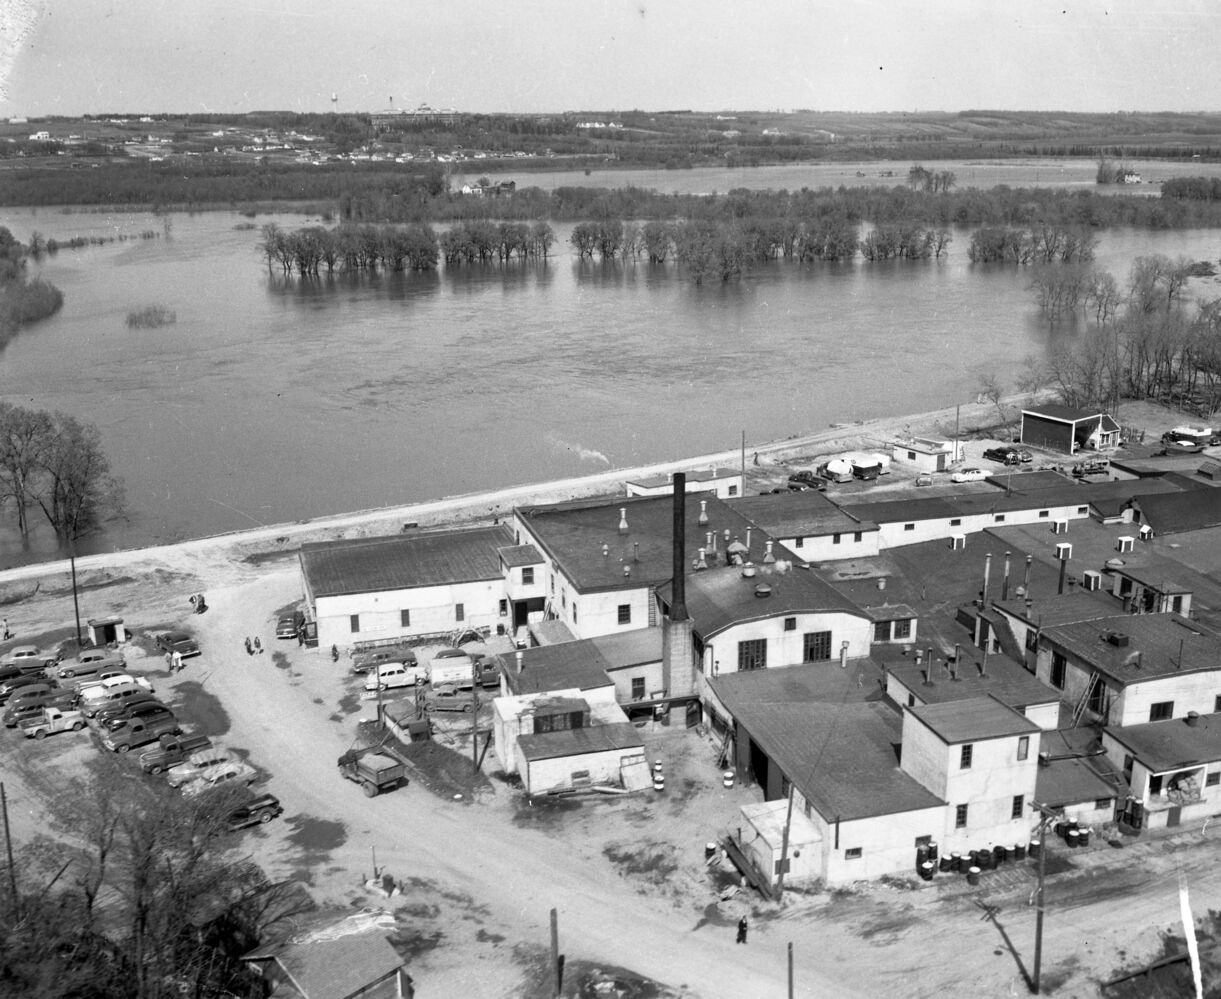 The buildings are safe, but the wide expanse of the Assiniboine River was visible in this photo from the flood of 1954. The picture appears to have been taken from near First Street and Pacific Avenue. Looking north, one can see the Brandon Mental Health Centre buildings near the horizon. (Courtesy CKX fonds, S.J. McKee Archives, Brandon University)